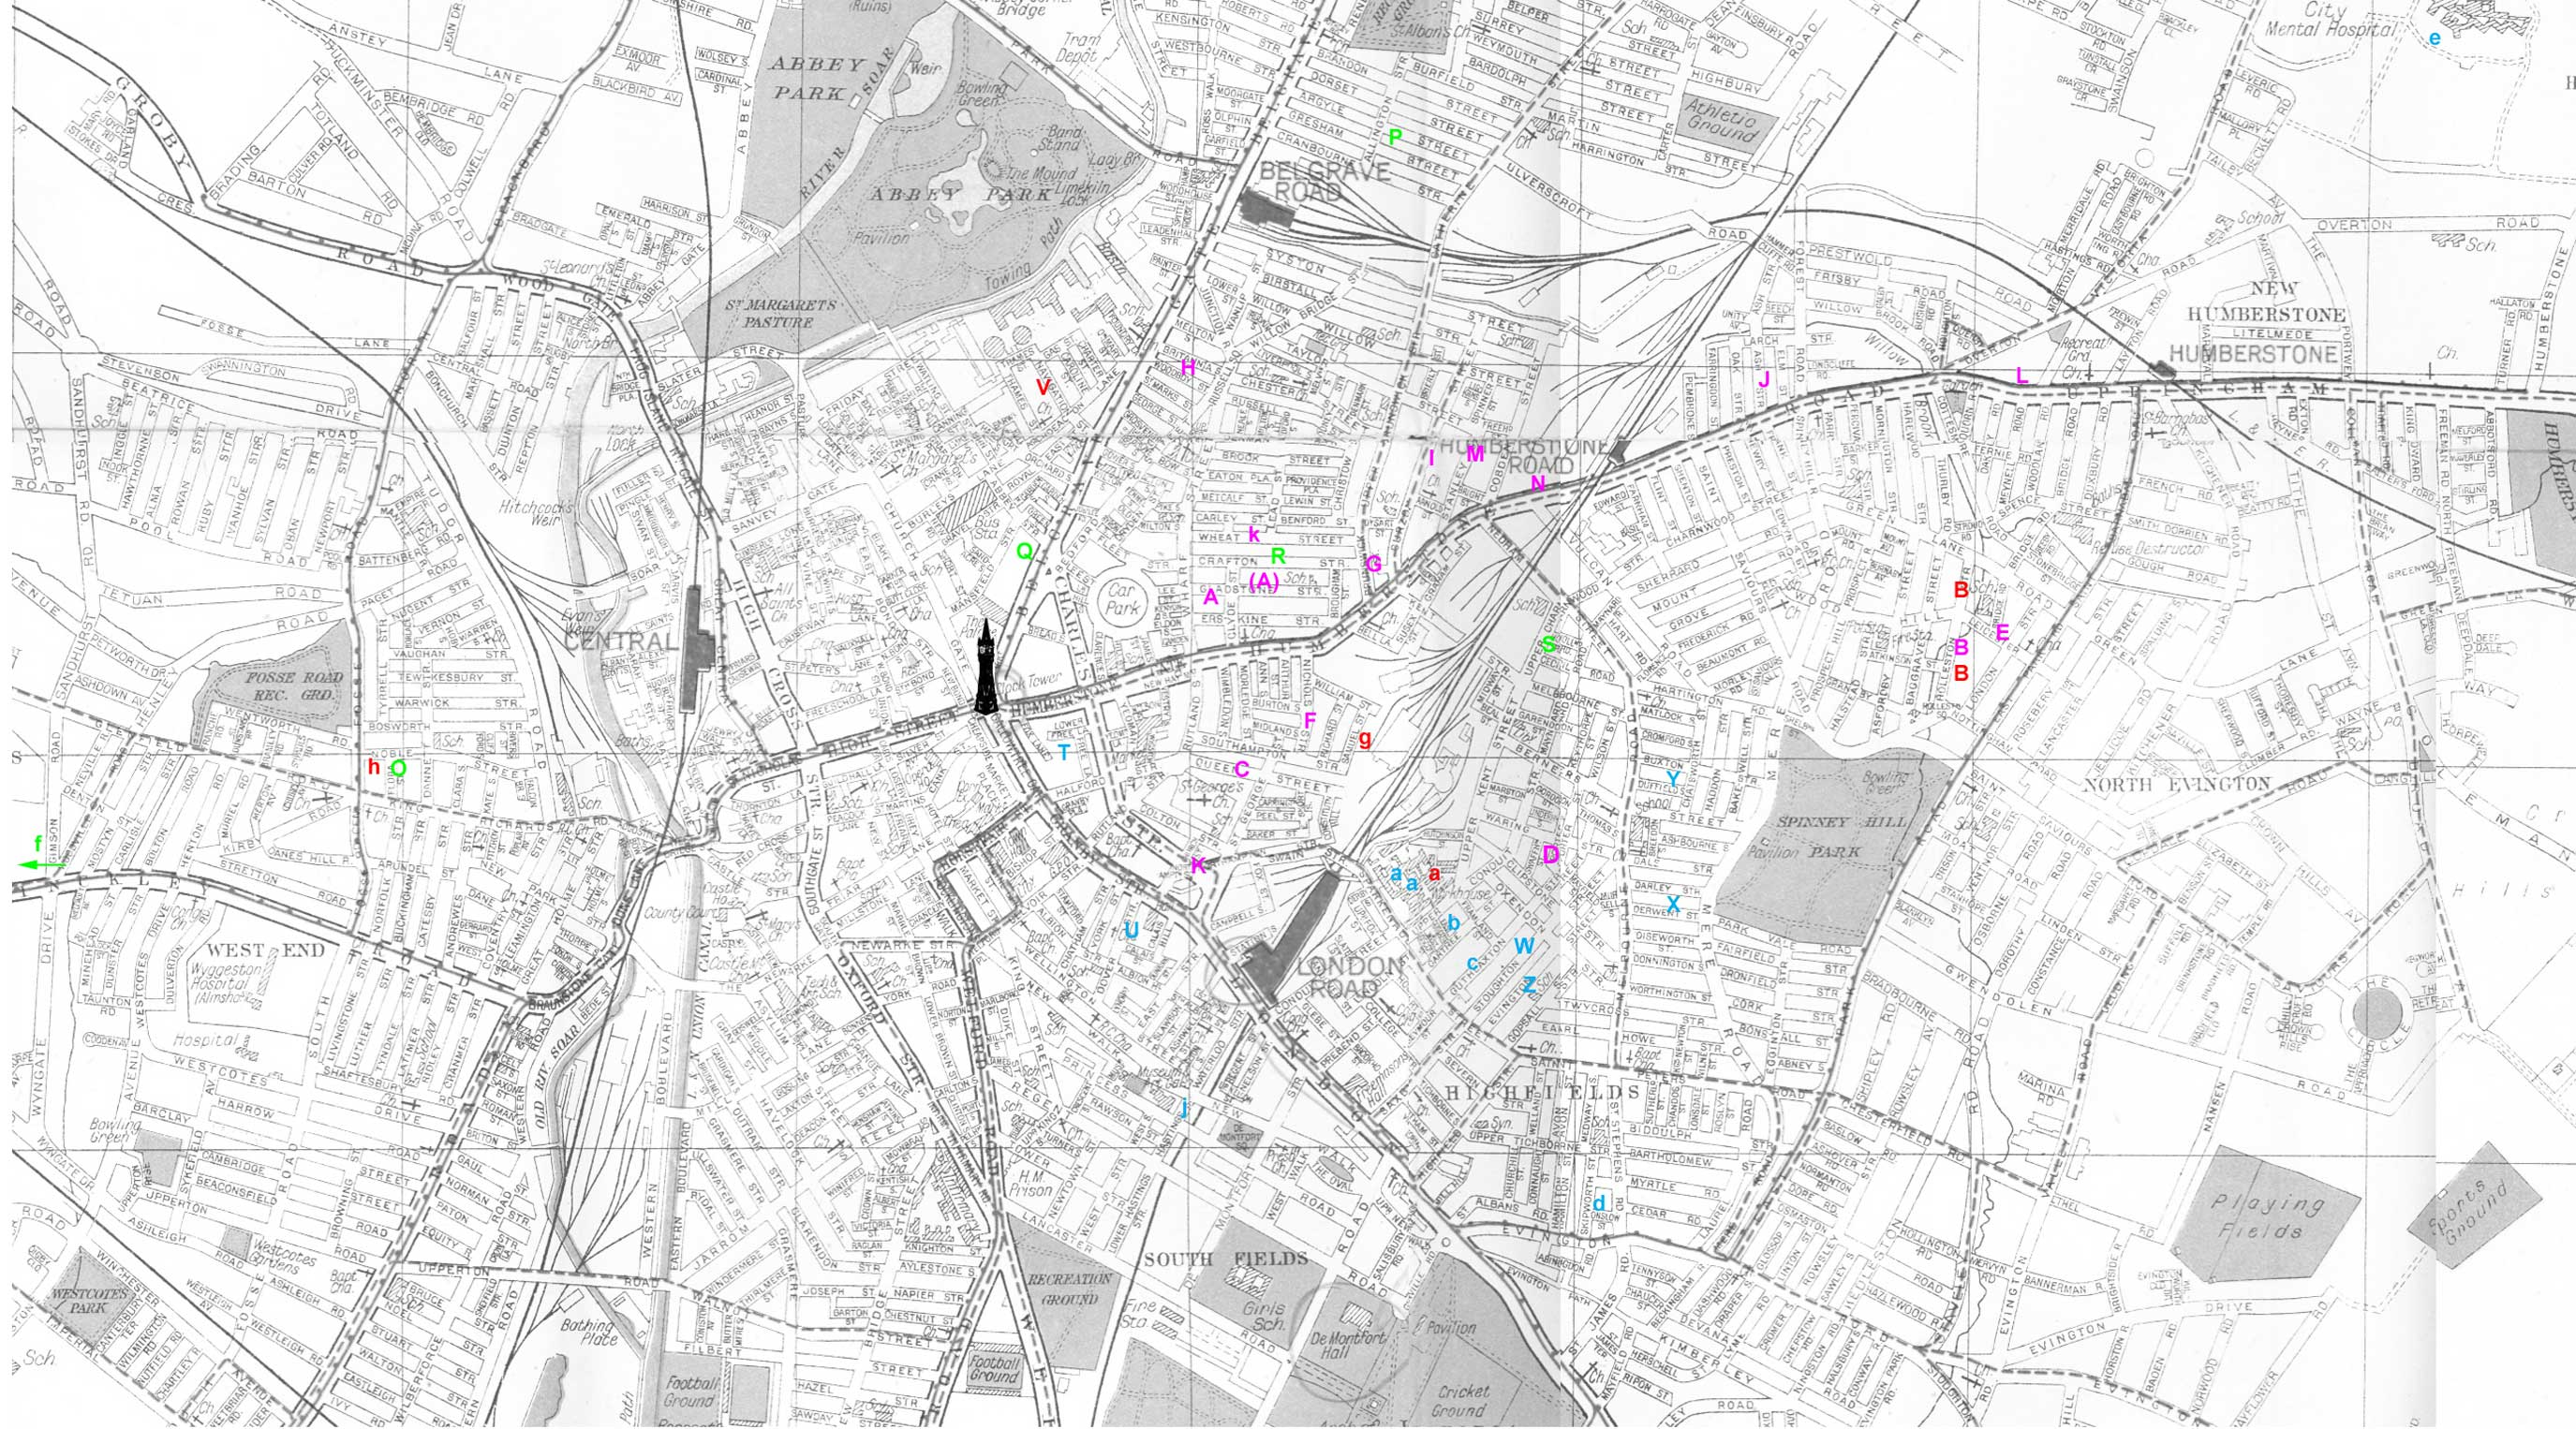 A map of central Leicester with the locations of Crane residences superimposed.